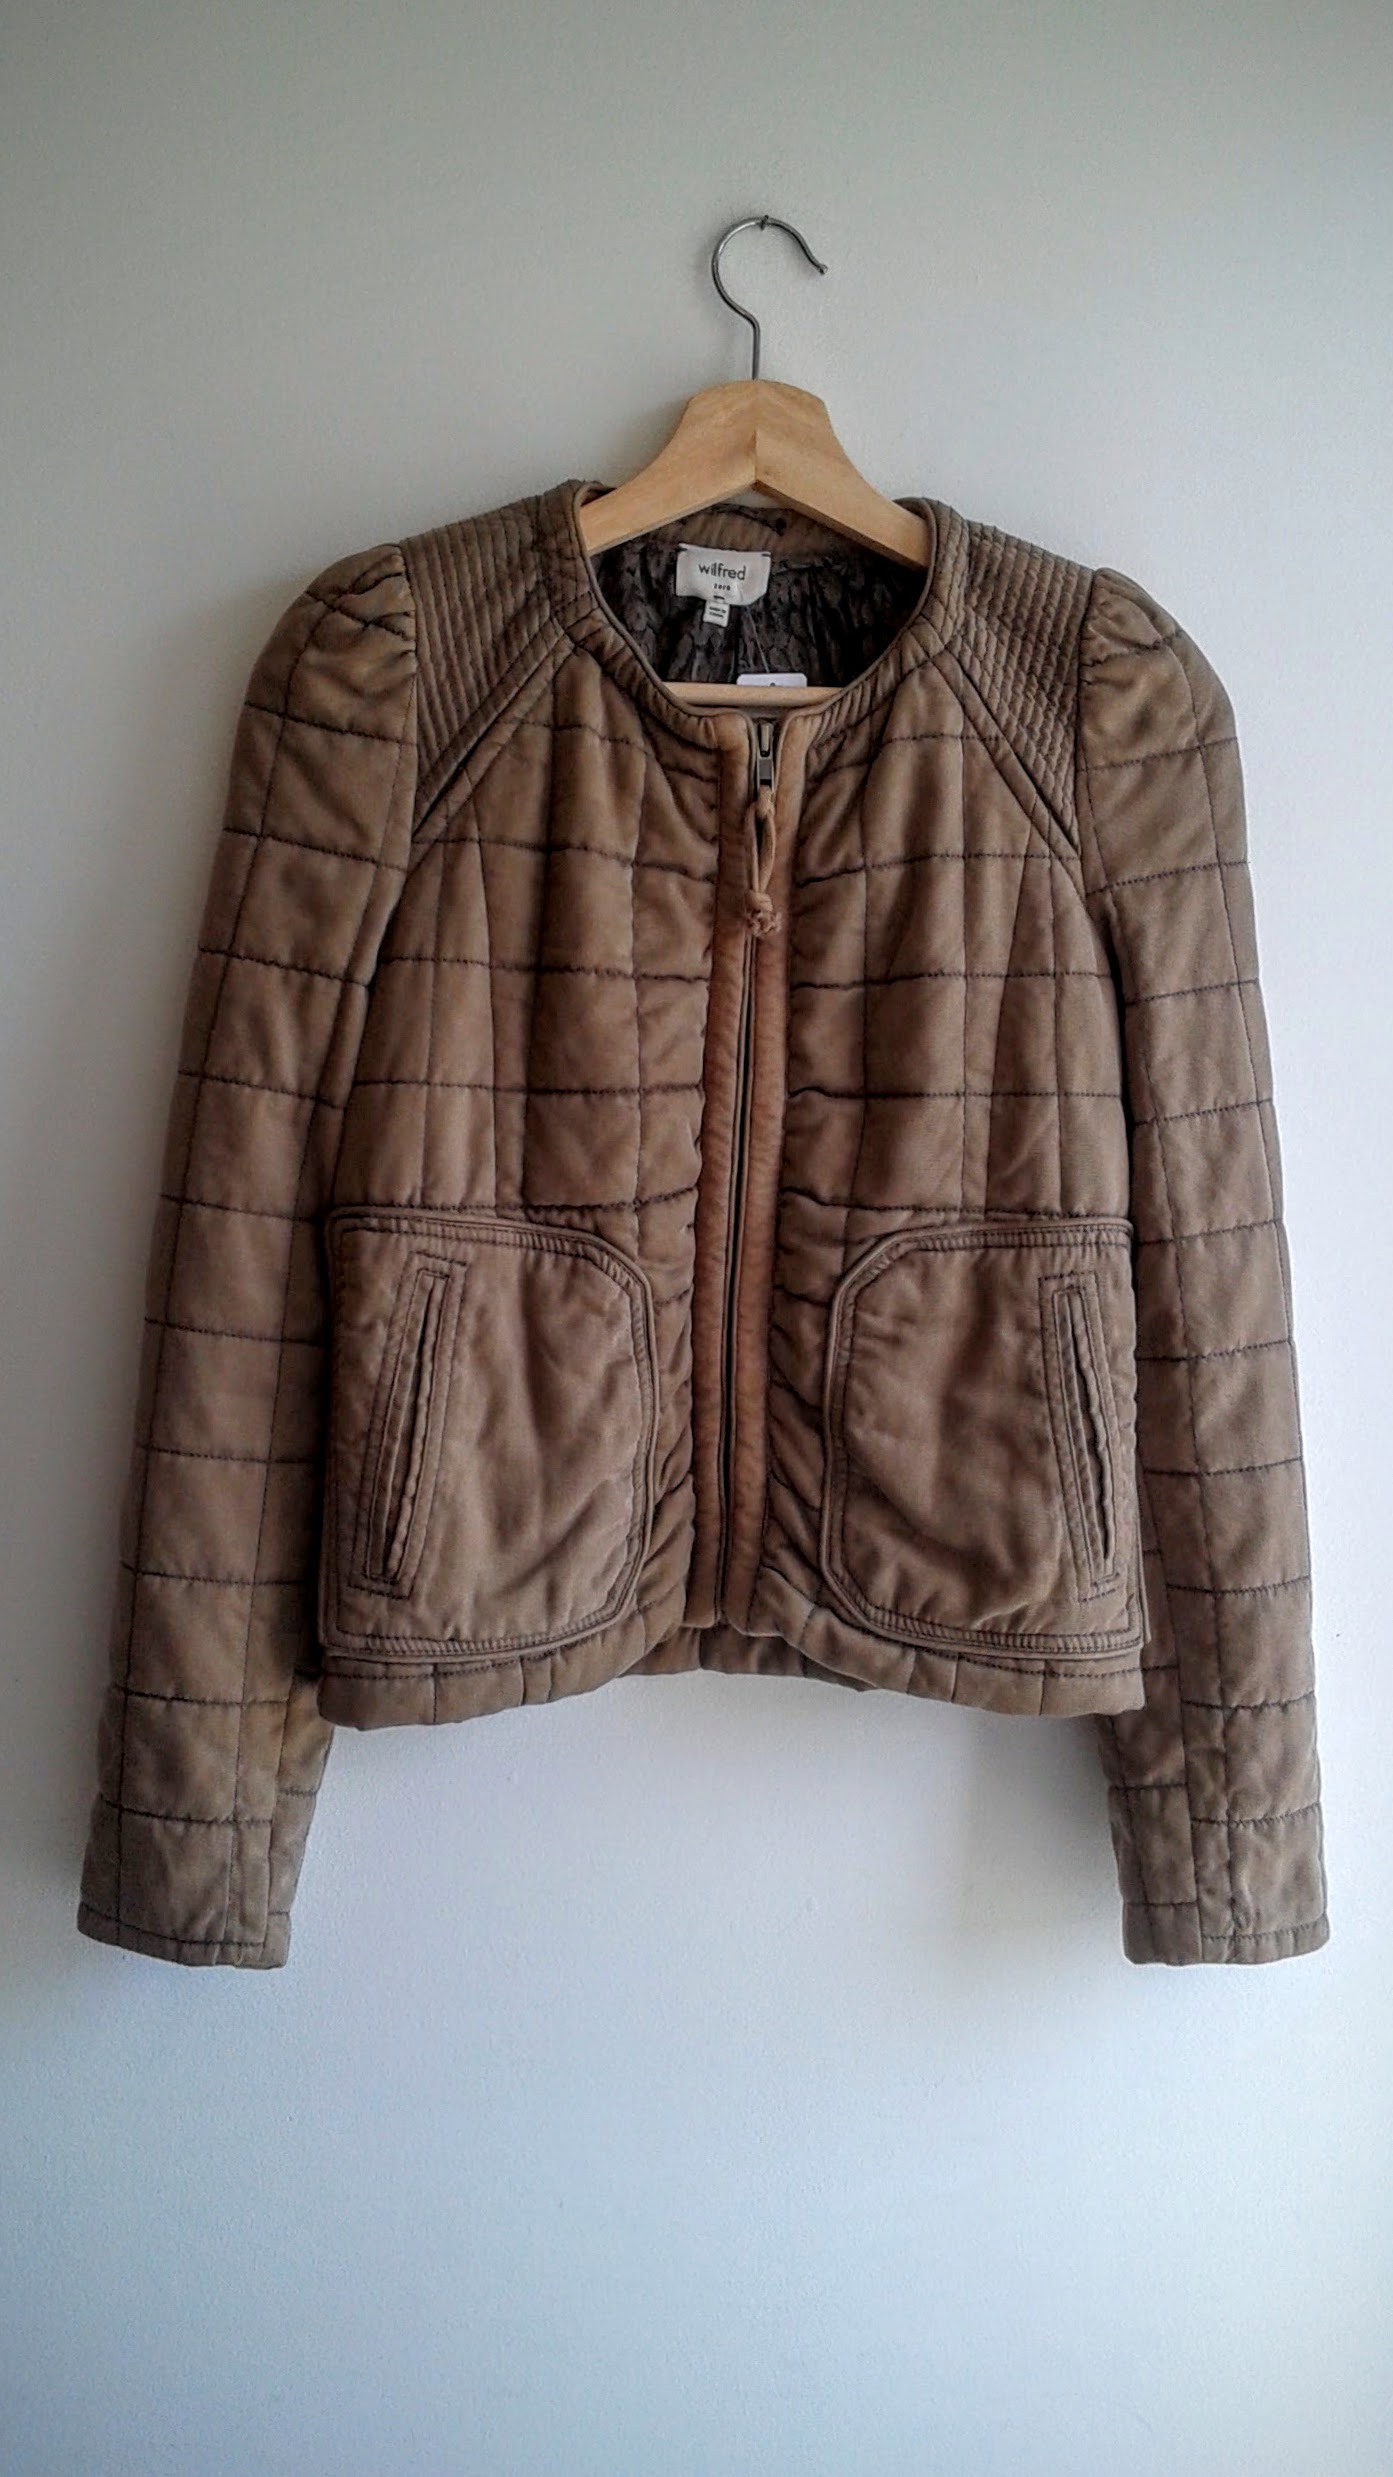 Wilfred quilted jacket; Size XS, $30